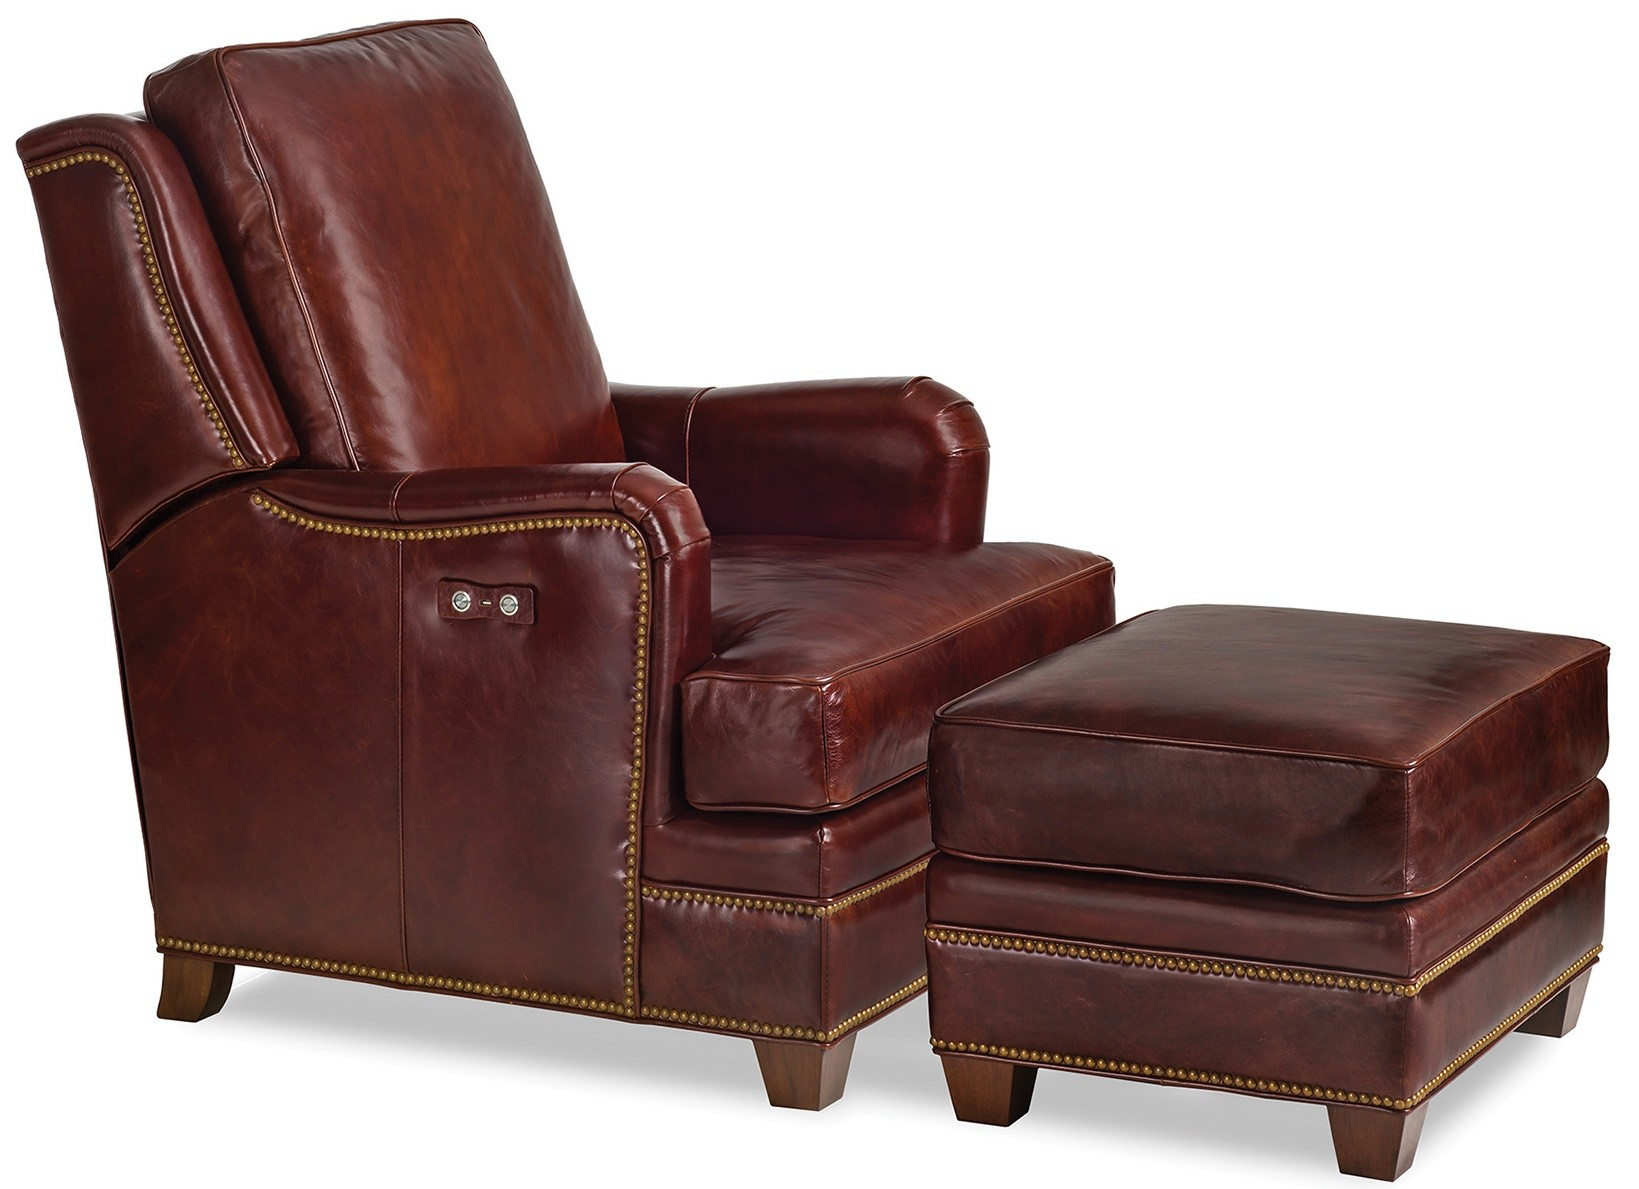 Luxury Leather Furniture Tilt Back Chair And Ottoman Set